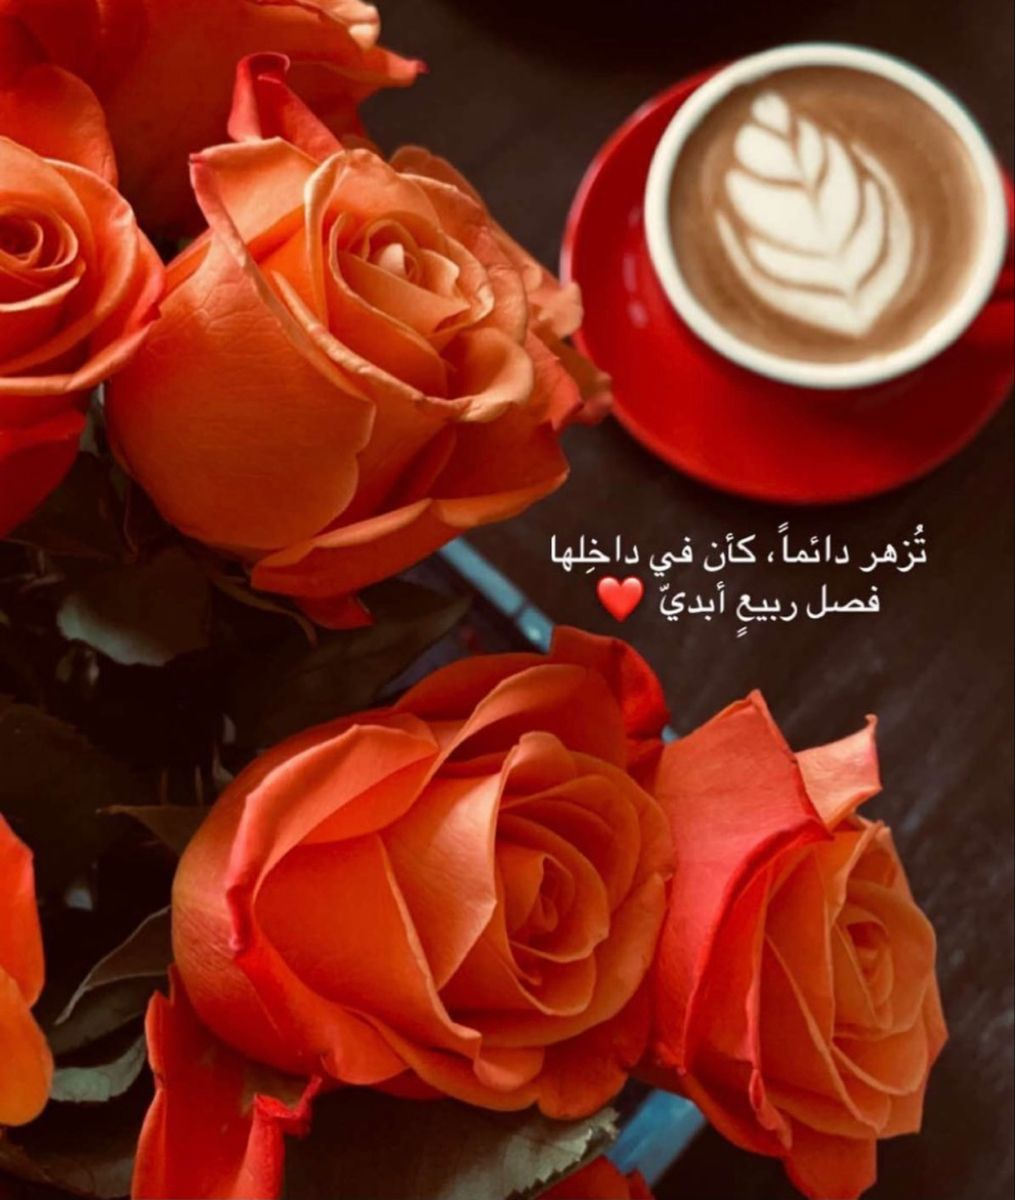 Pin By H On خواطر Words Just Words In 2021 Flowers Rose Plants